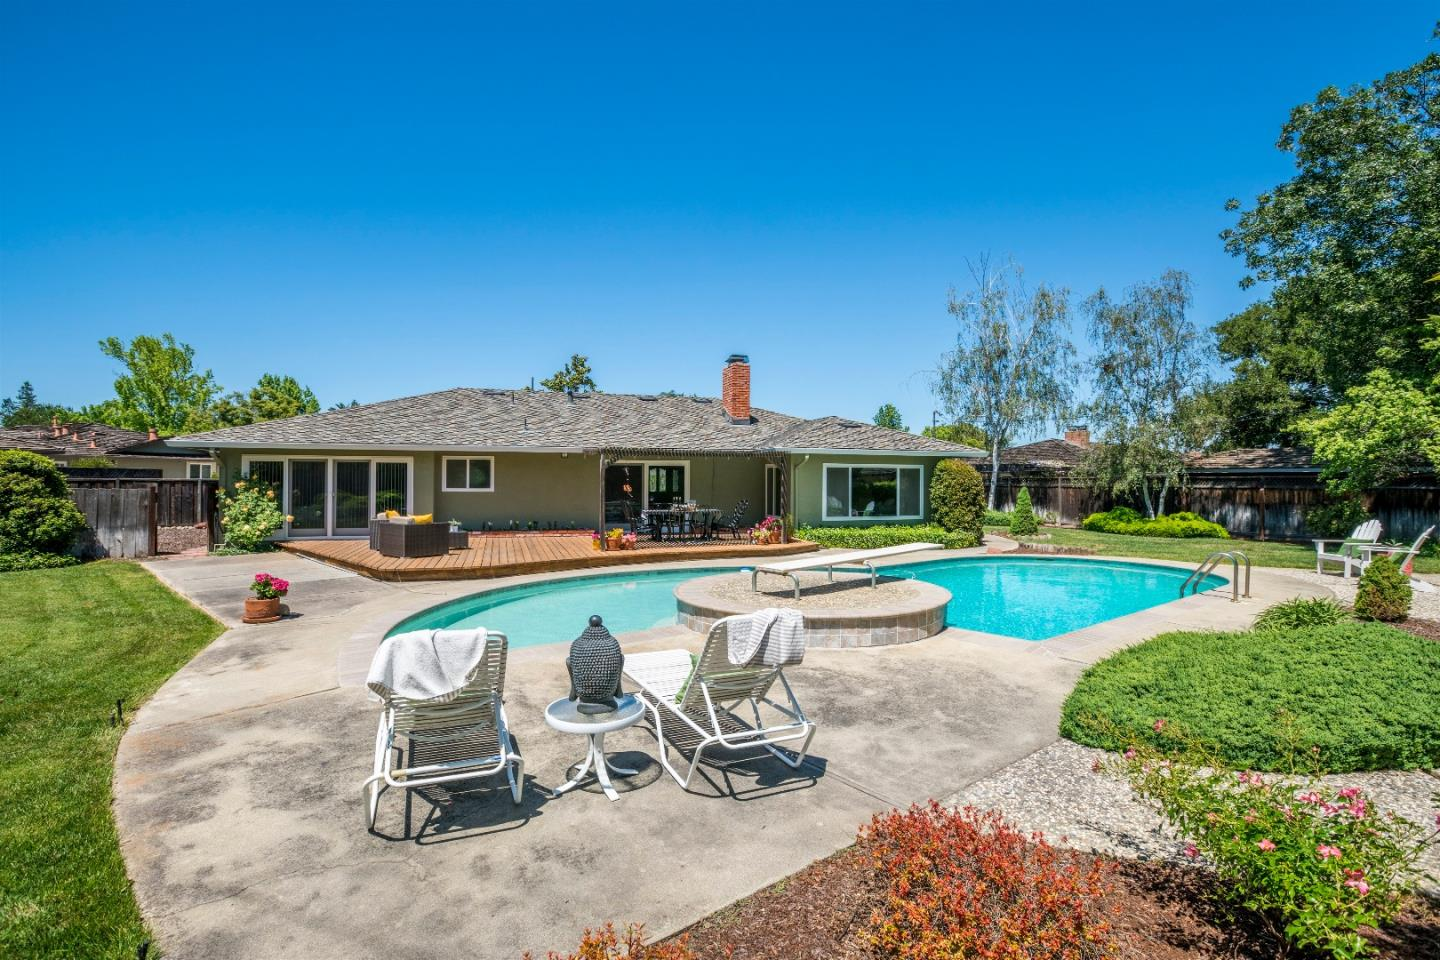 Additional photo for property listing at 12336 Obrad Dr  SARATOGA, CALIFORNIA 95070